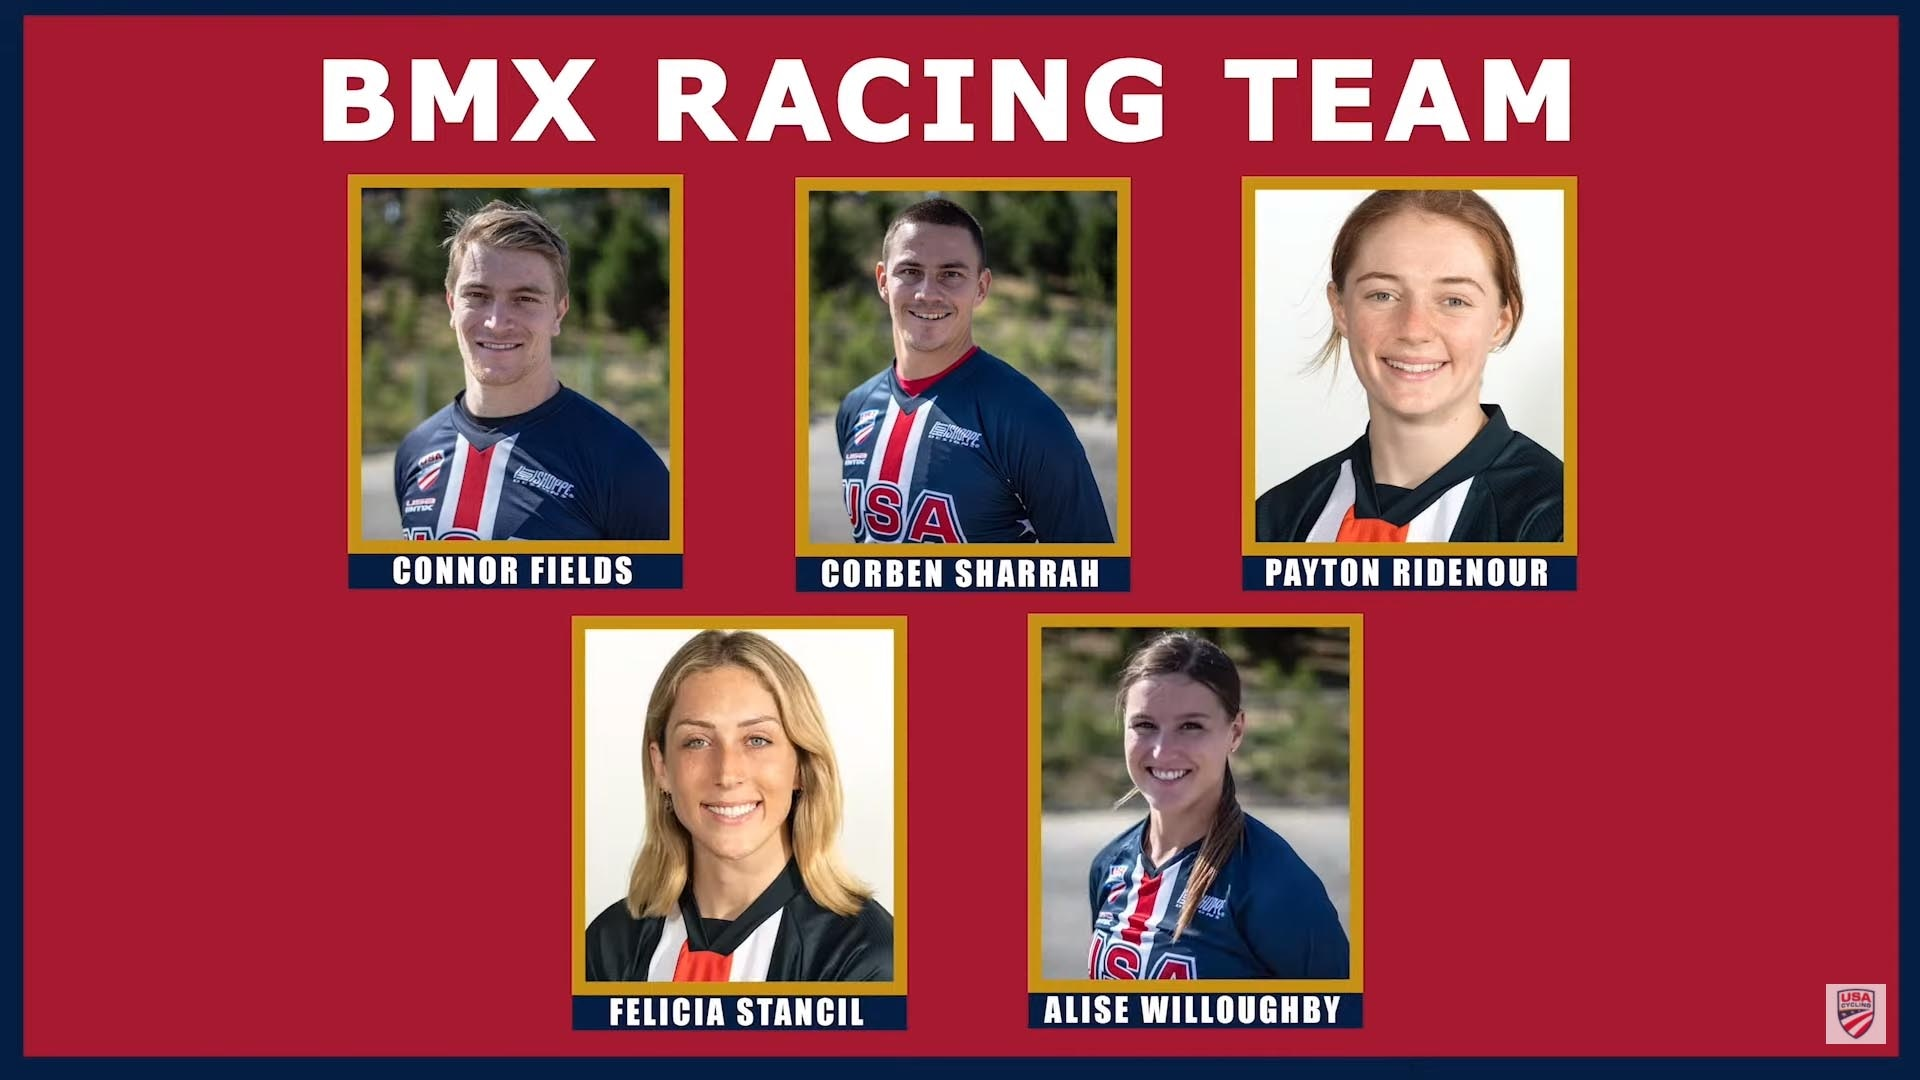 Team USA's BMX racing team roster for the Tokyo Olympics